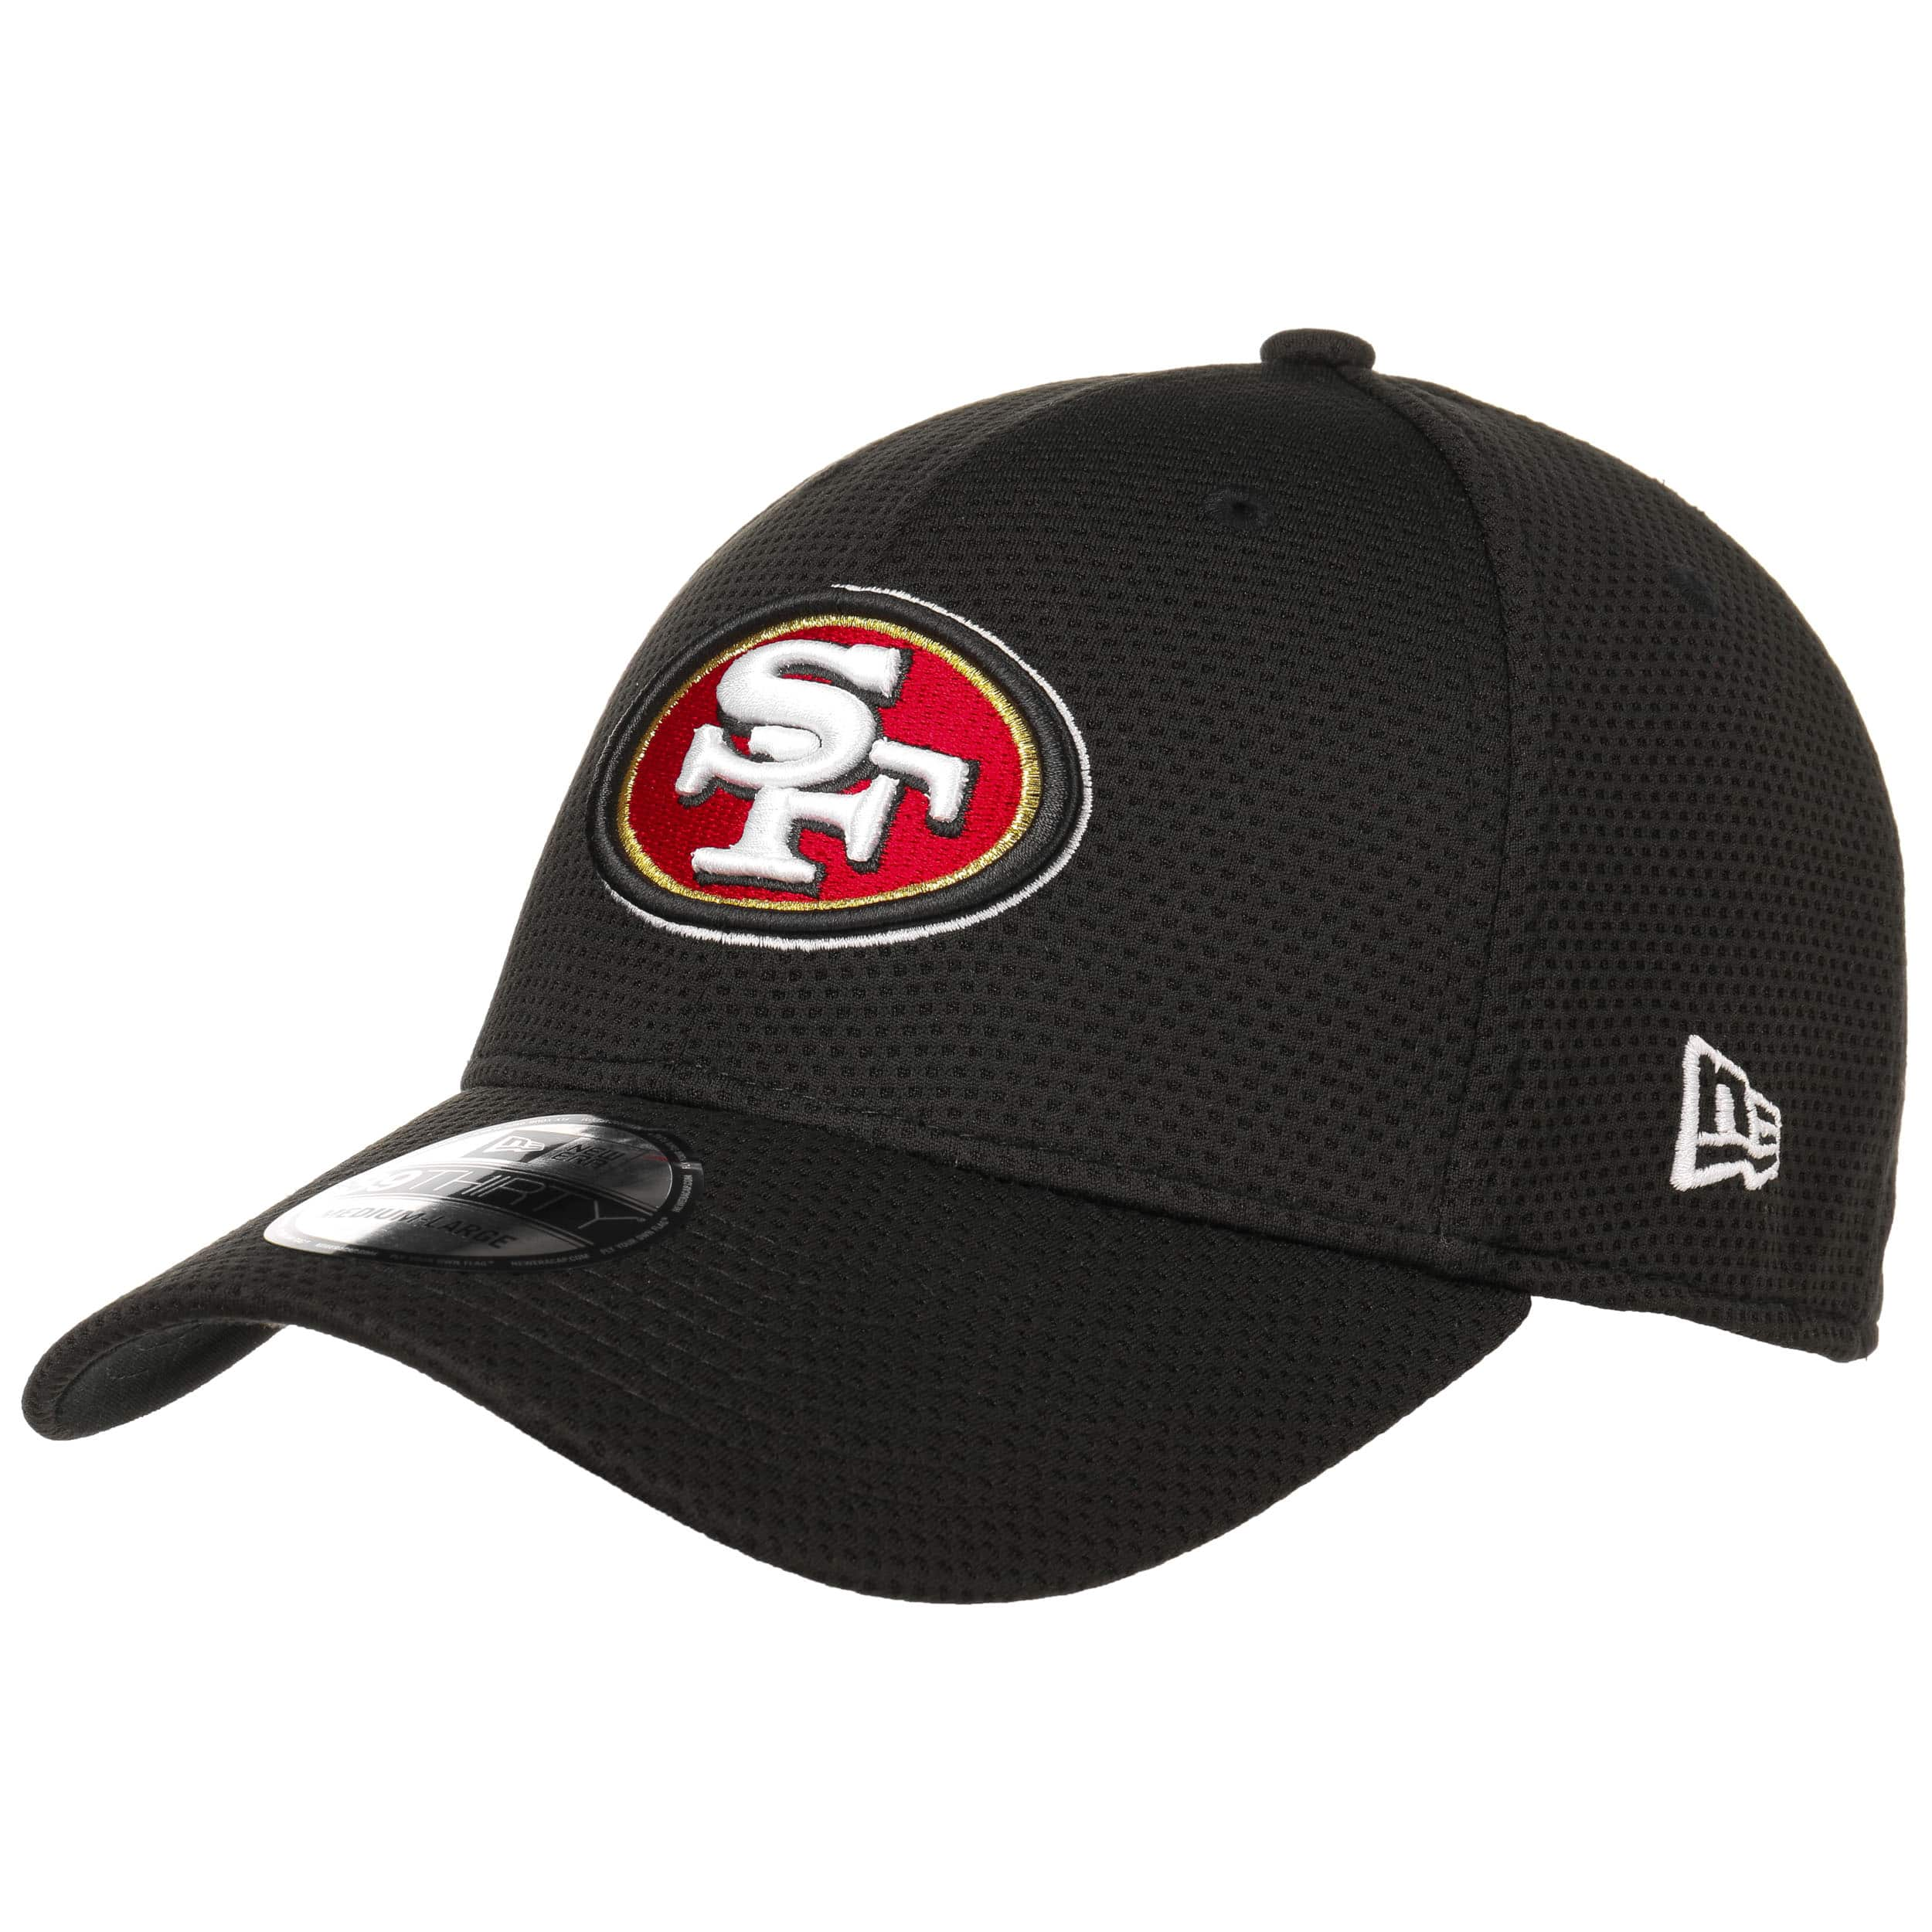 31740afe3c7769 ... buy 39thirty sideline 49ers cap by new era black 7 2ccae 275d8